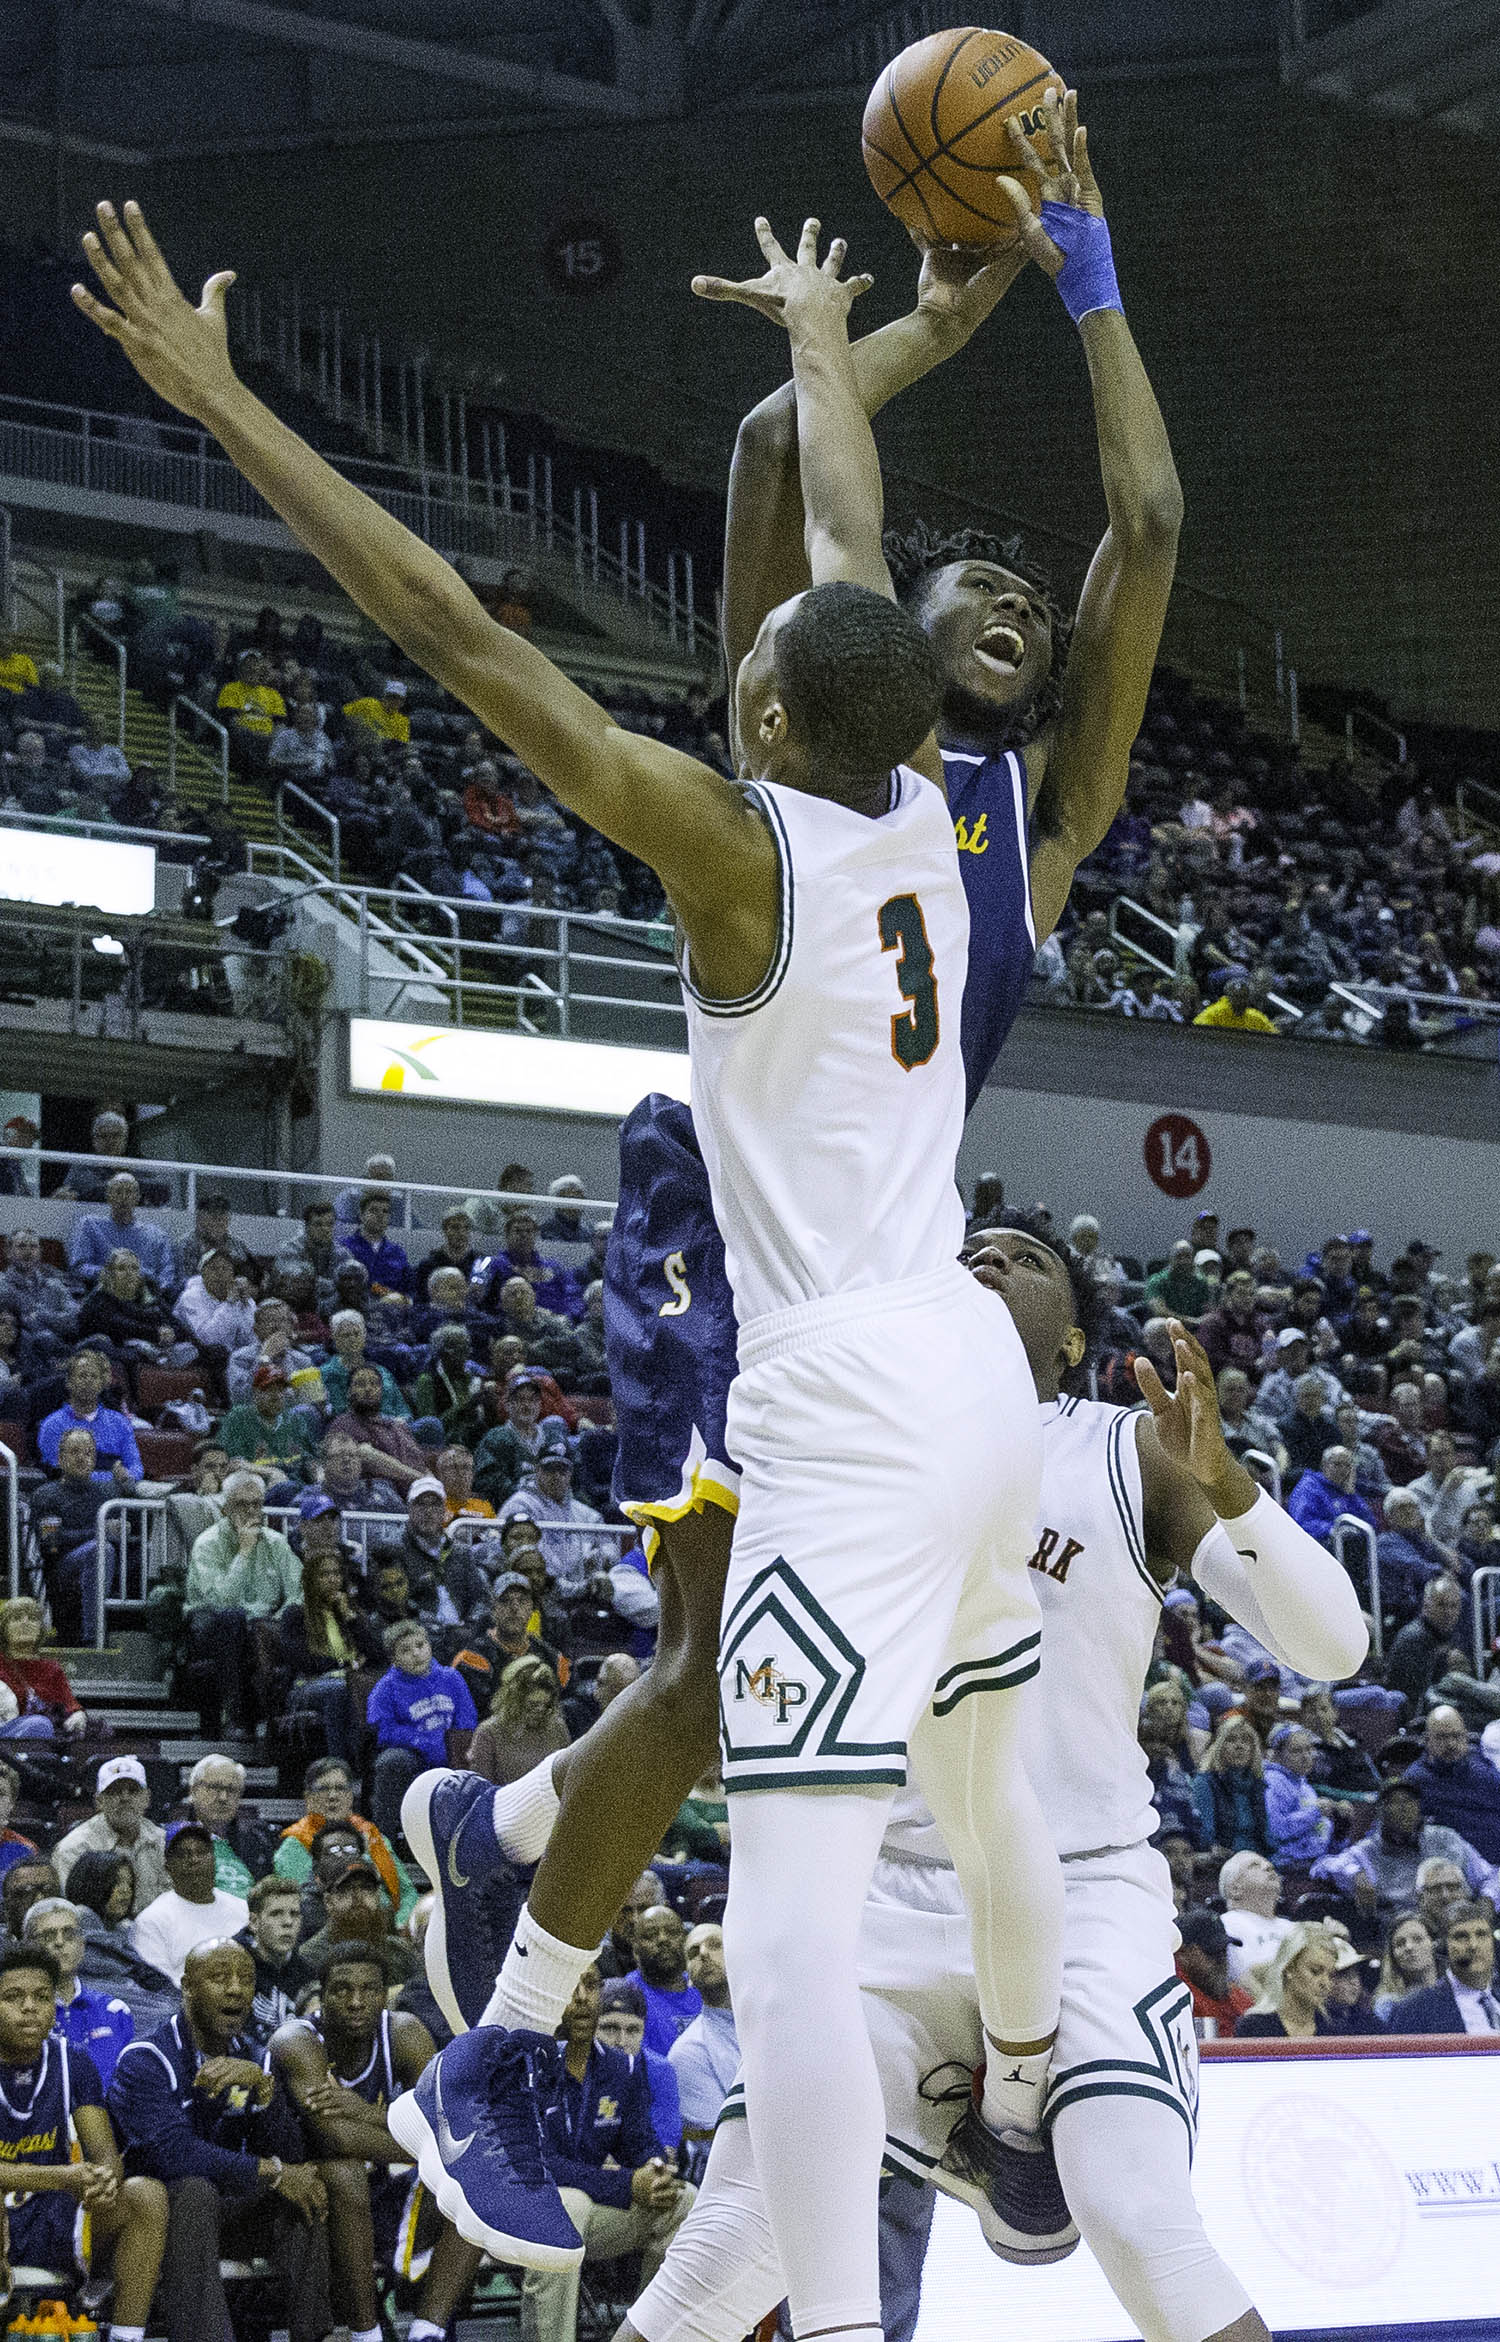 Southeast's Anthony Fairlee works a shot around Morgan Park's Cam Burrell  during the 3A championship game at Carver Arena in Peoria, Ill., Saturday, March 17, 2018. [Ted Schurter/The State Journal-Register]